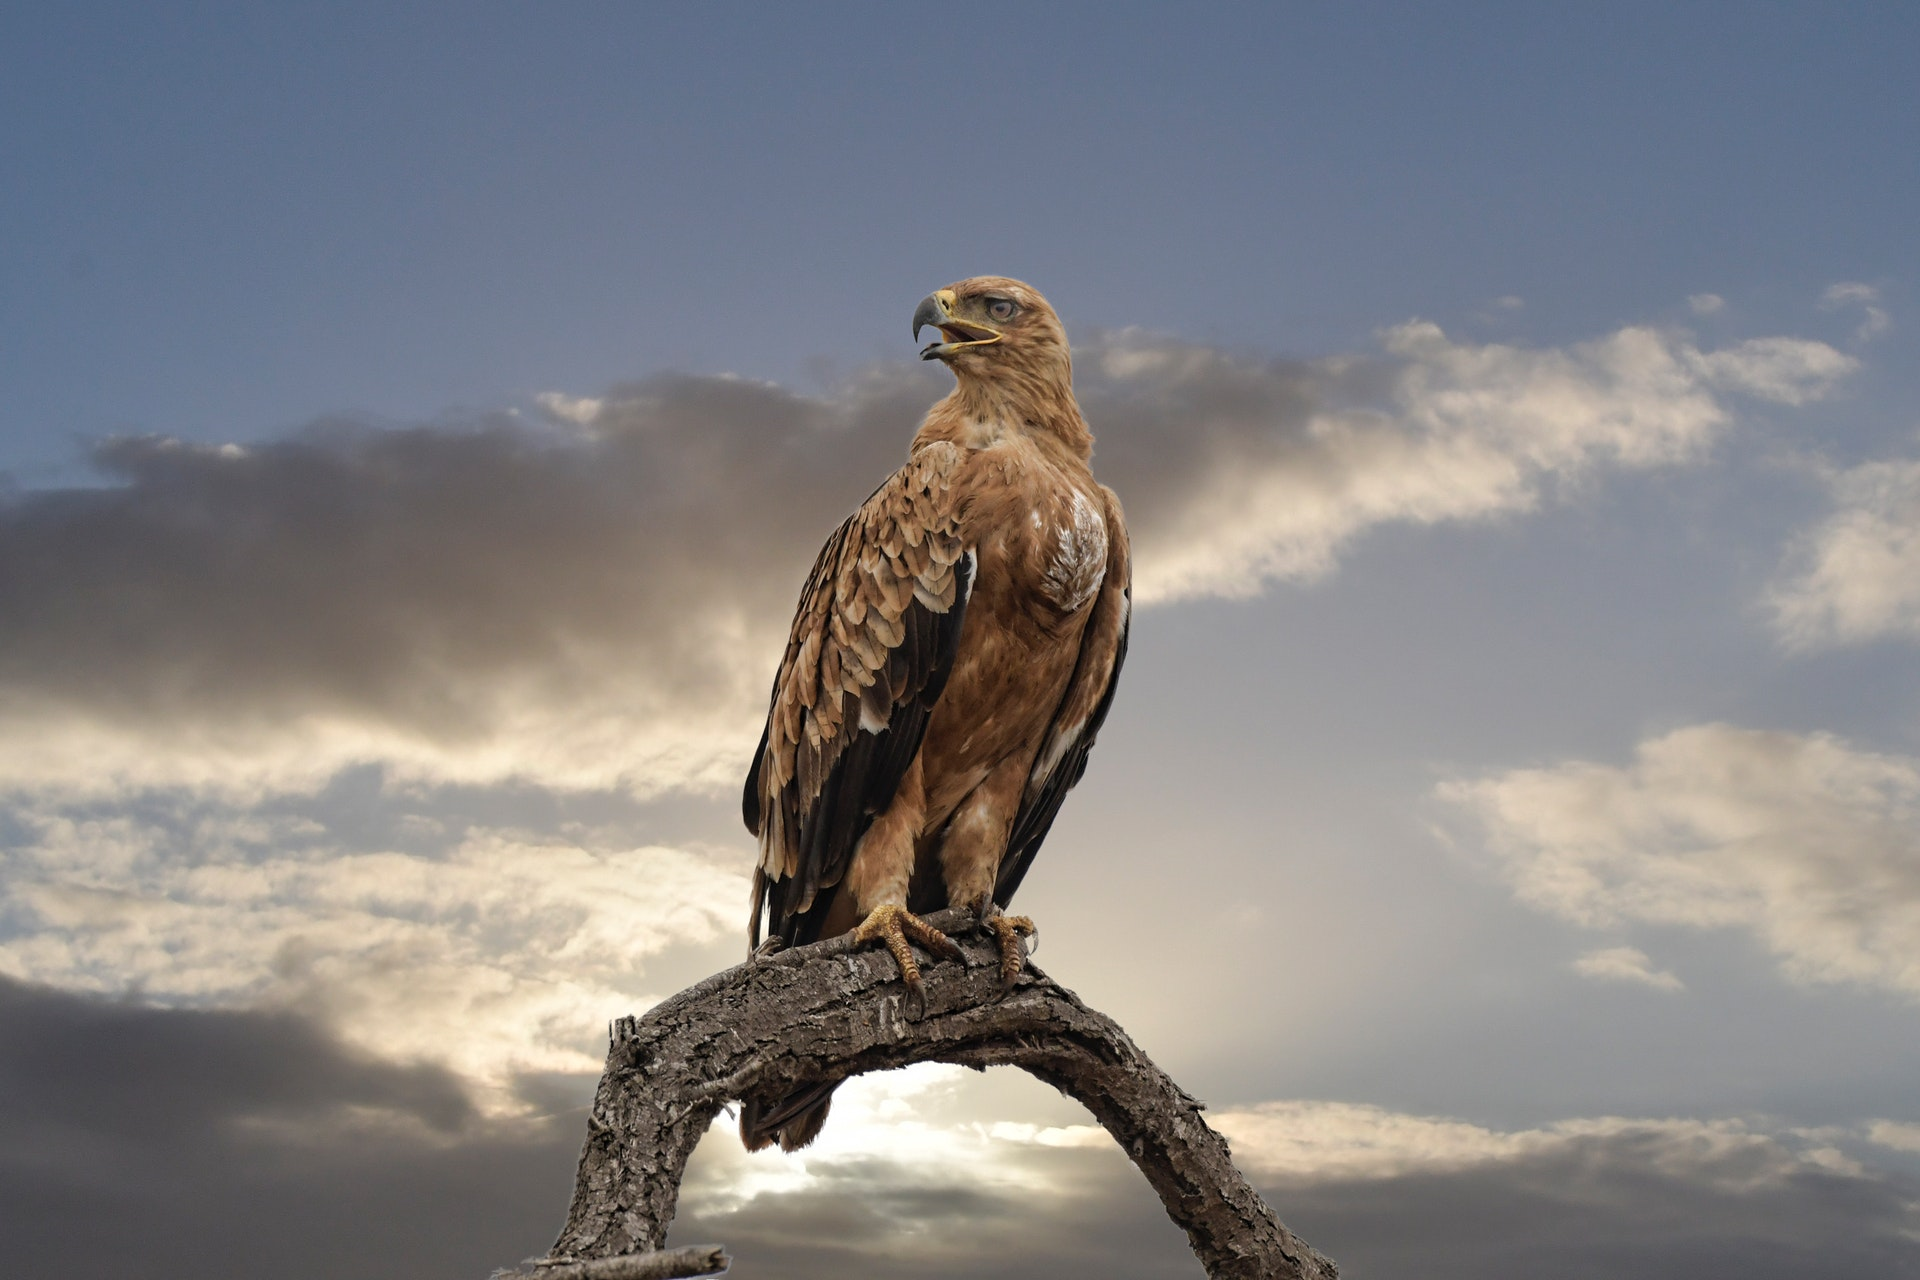 Falcon perched on tree